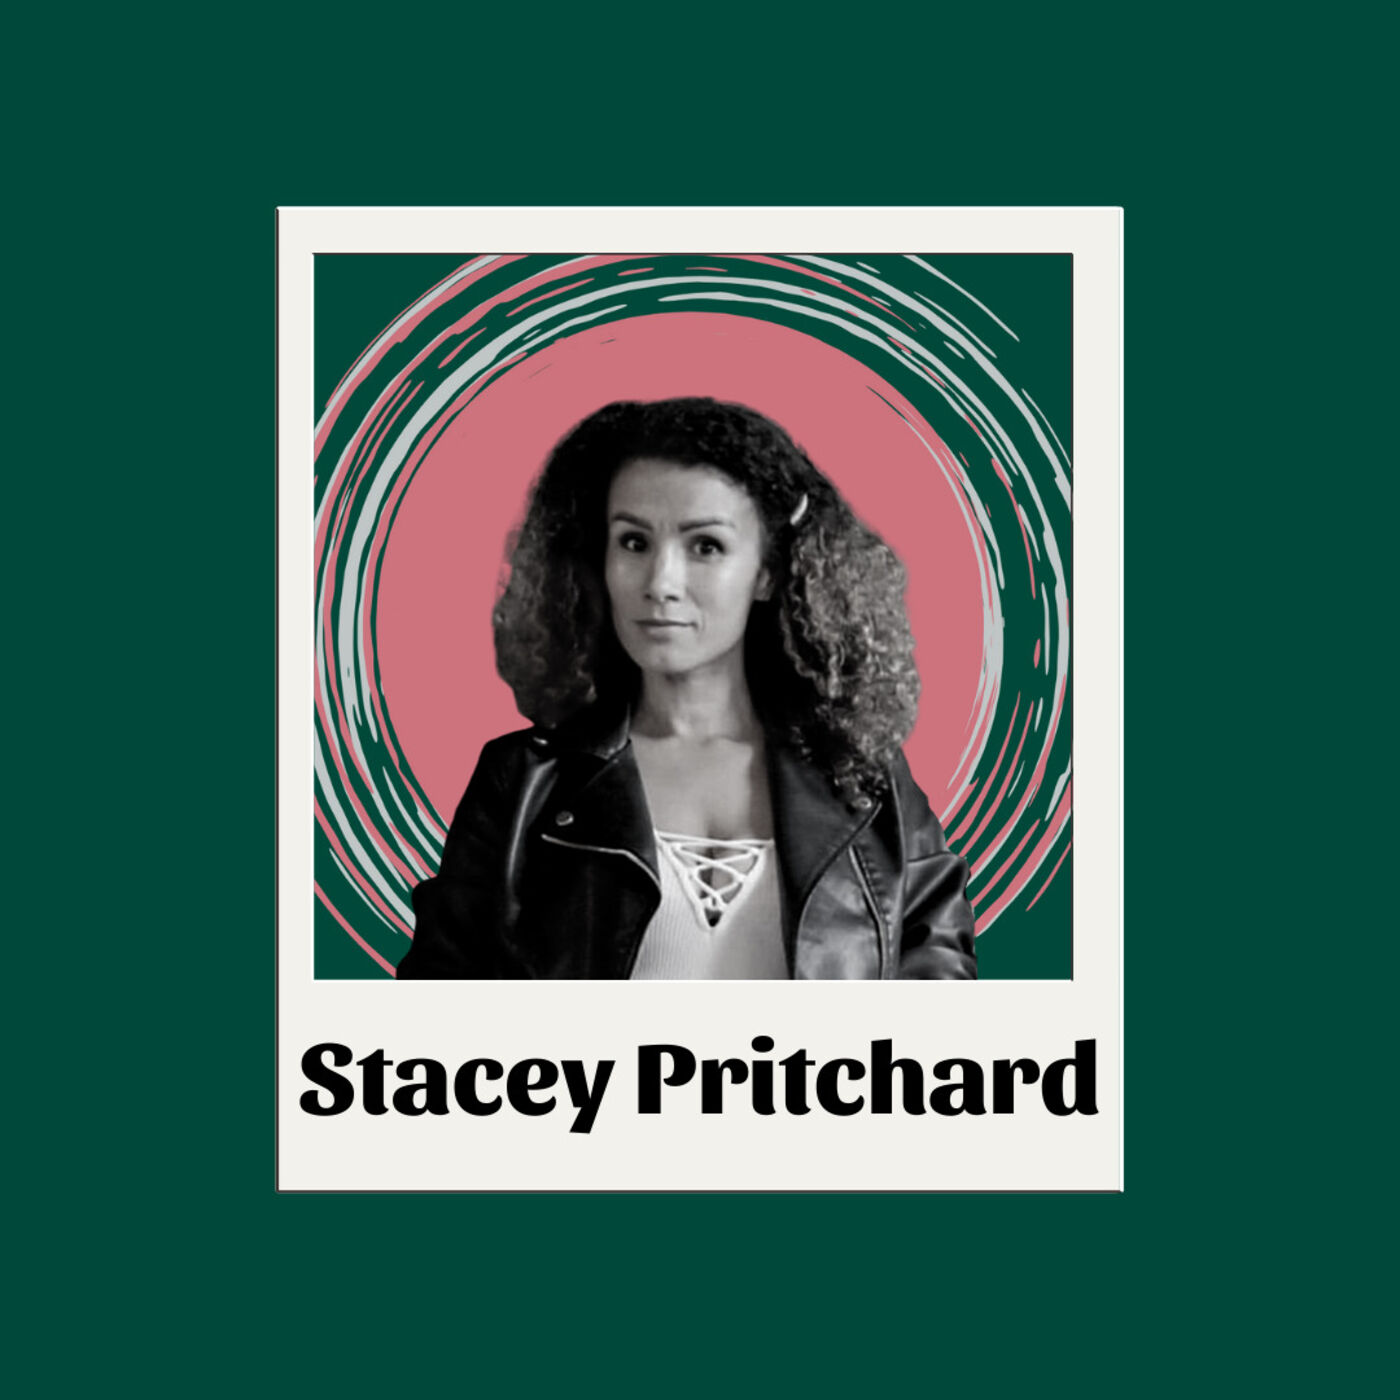 EP15 Stacey Pritchard: CBD , Finding New Ways and Feeling Your Feelings